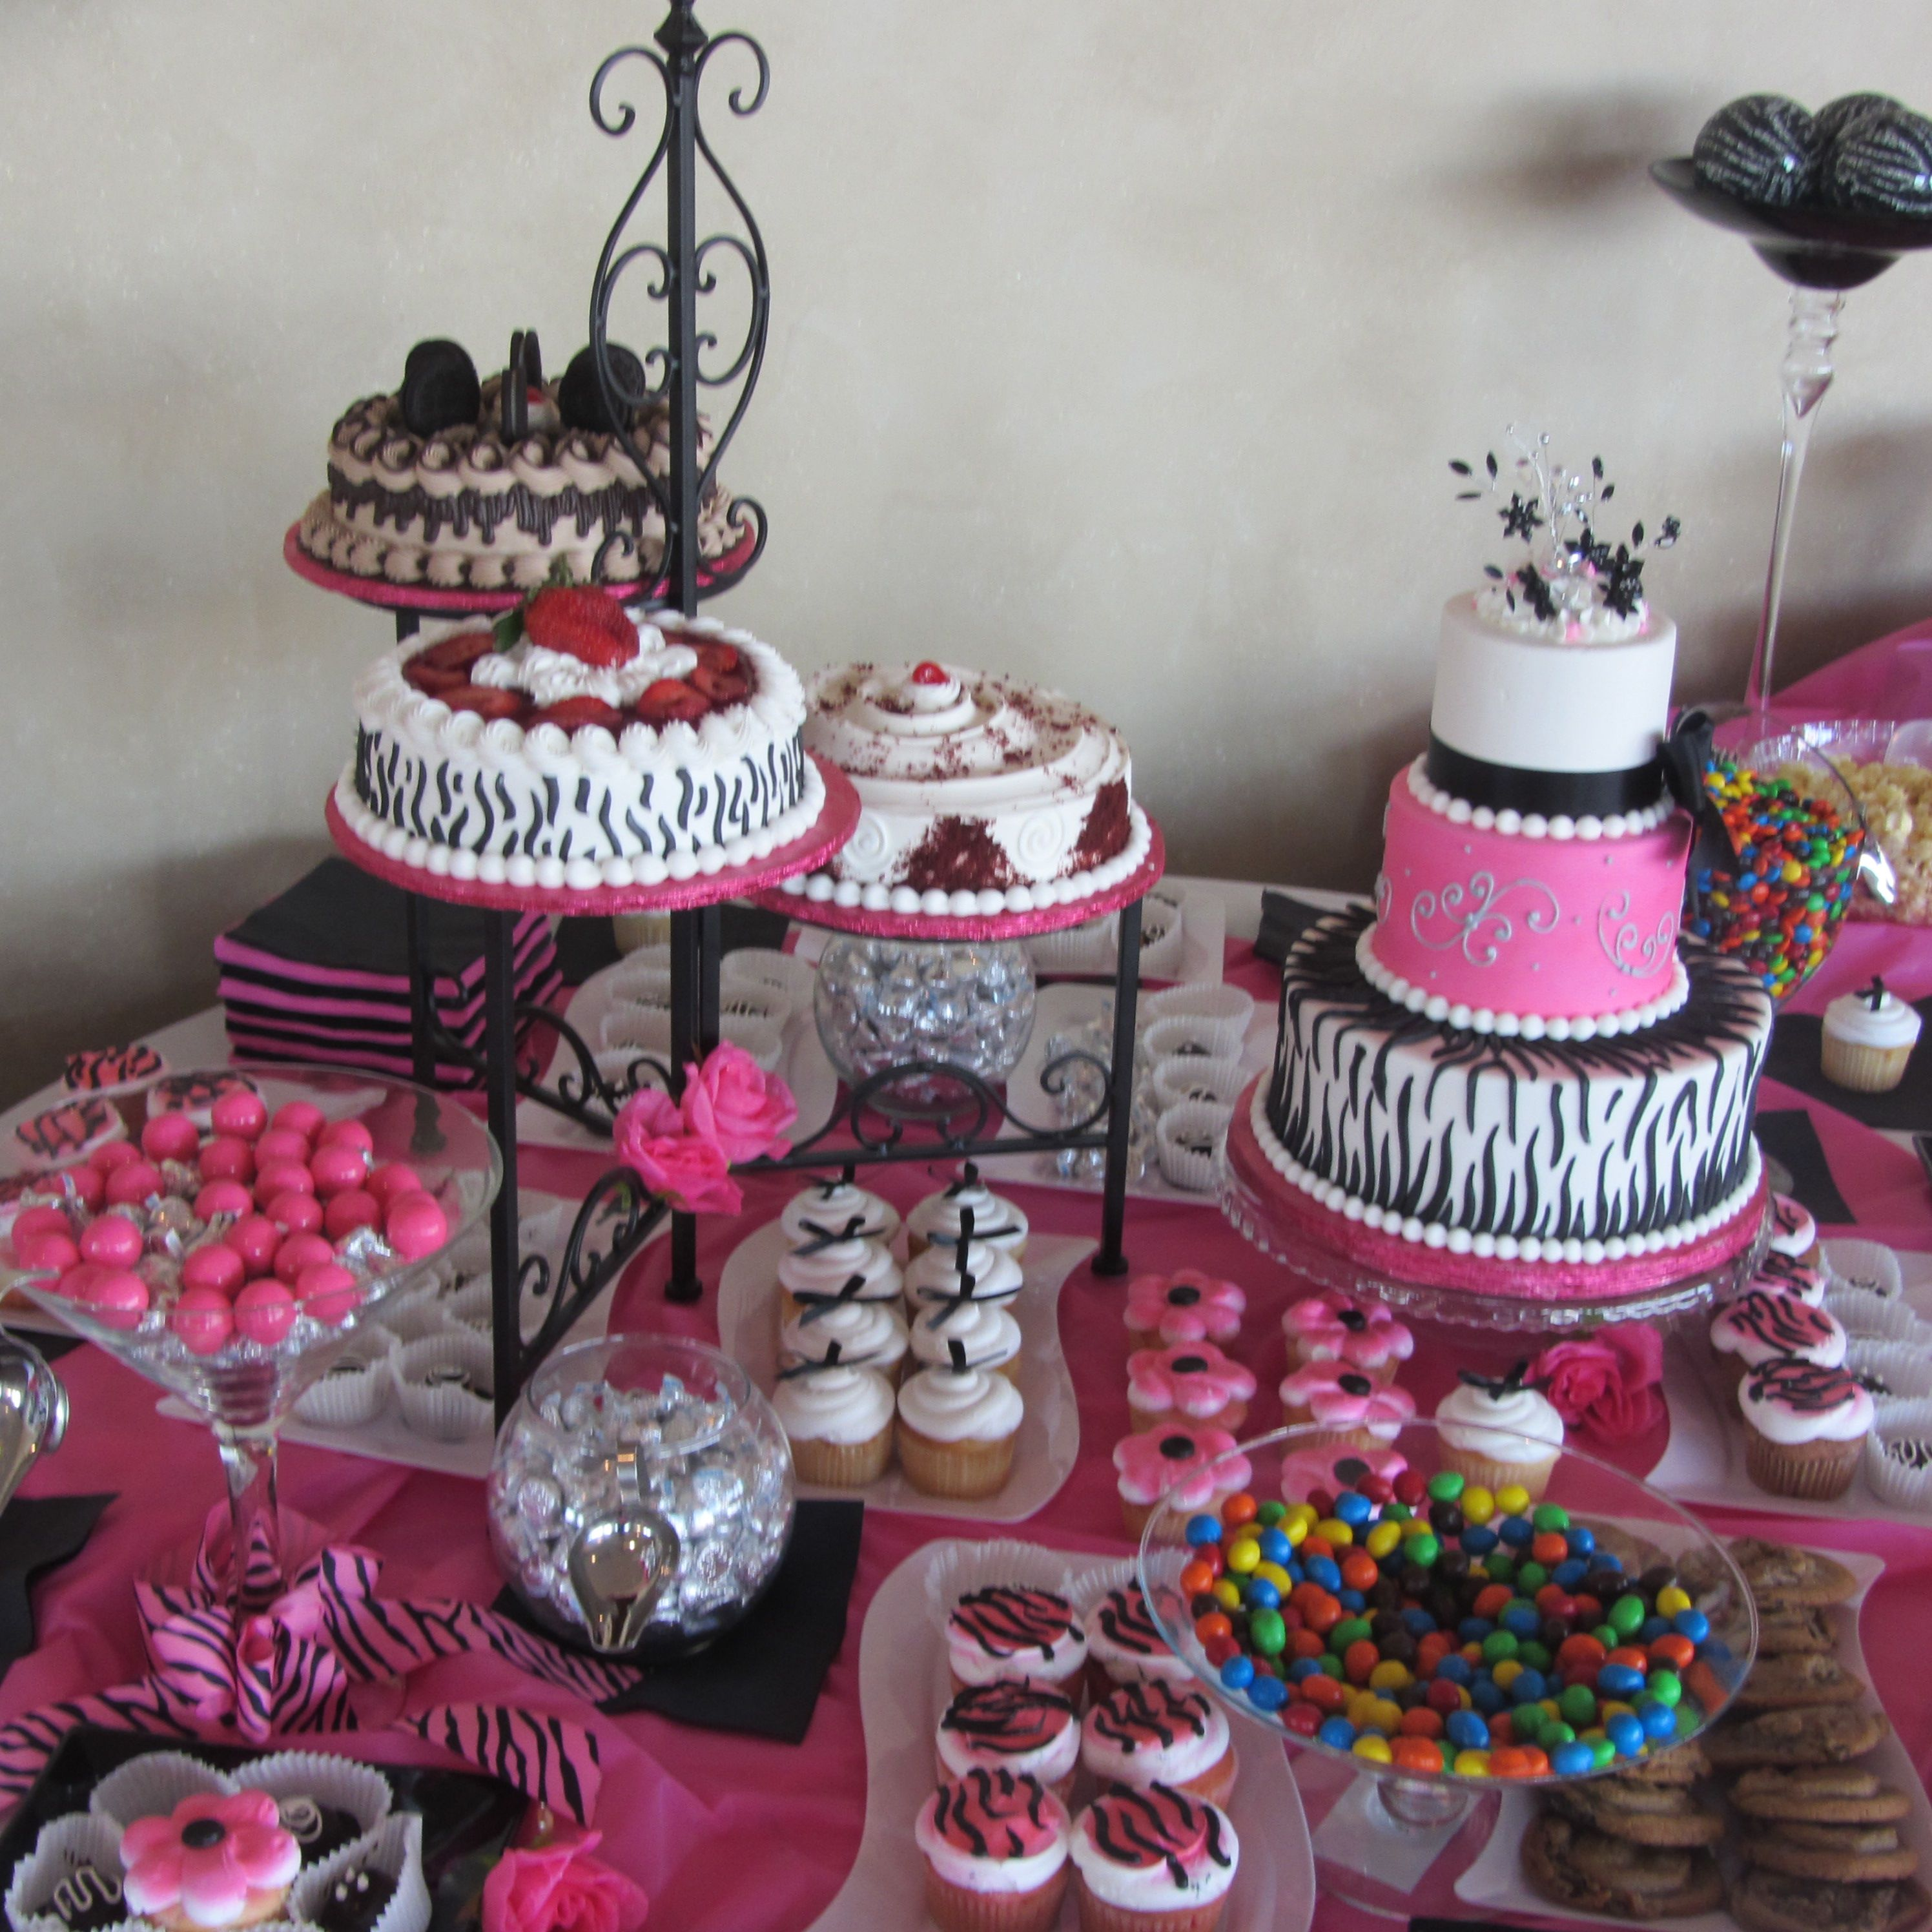 Candy buffet ideas for sweet sixteen - Find This Pin And More On Sweet 16 Party Idea